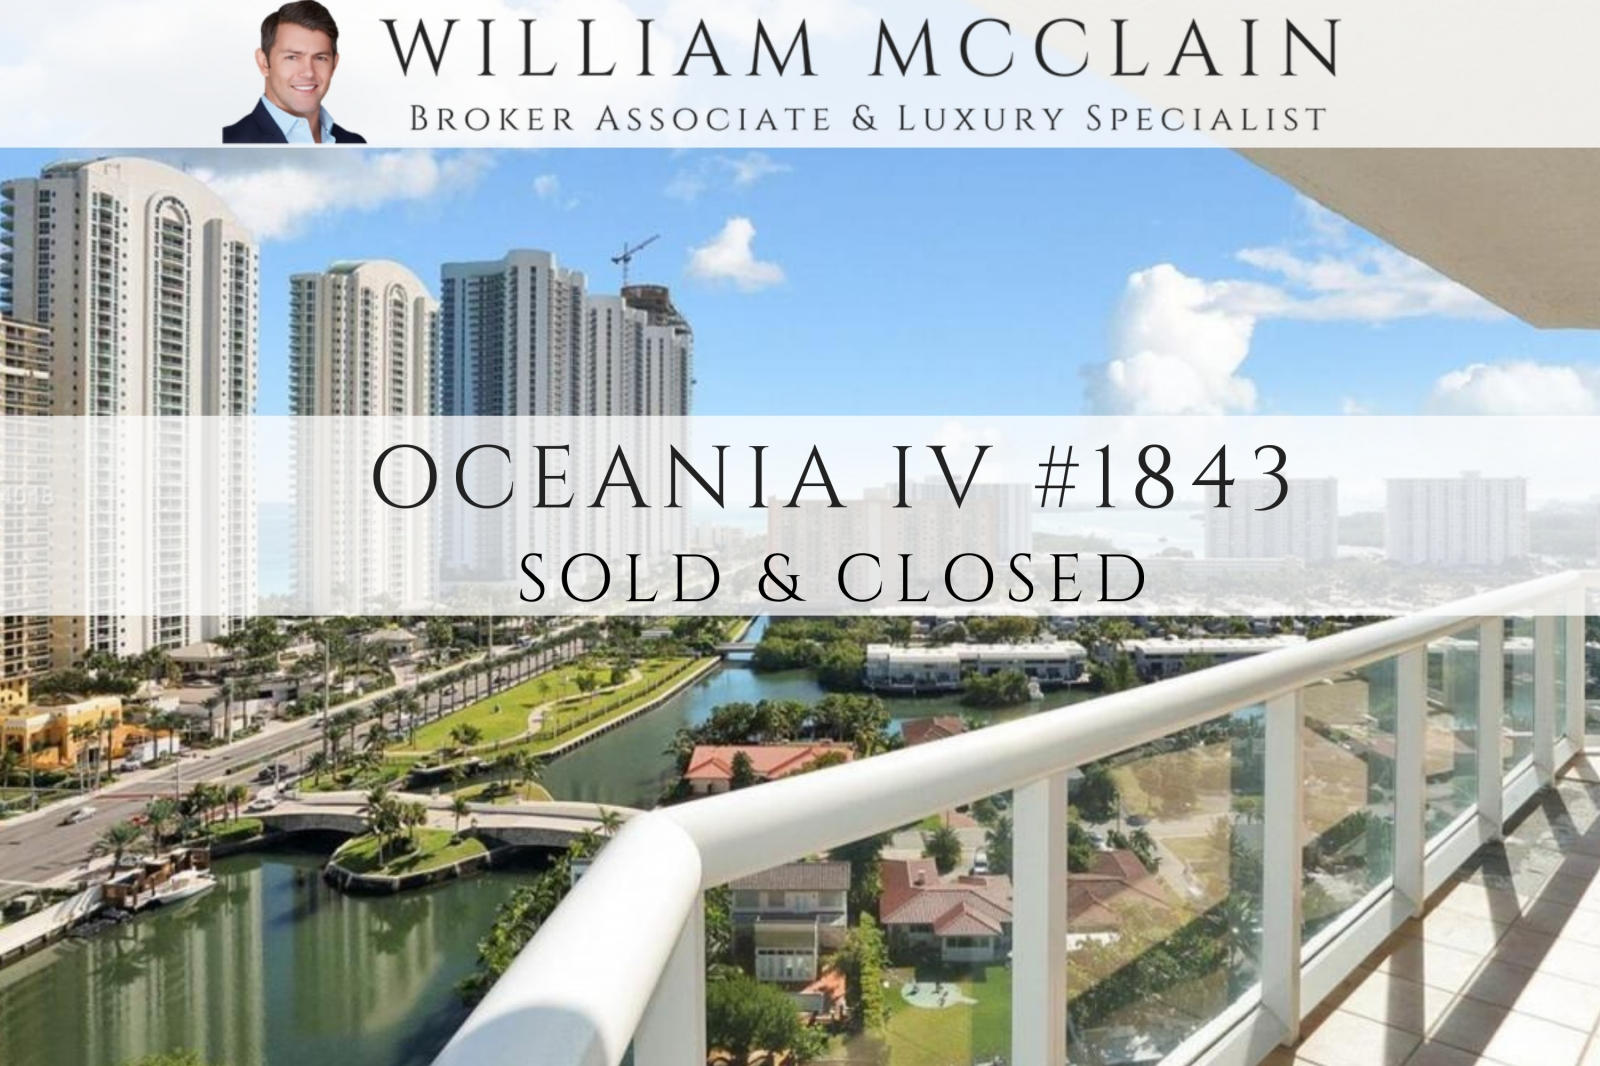 OCEANIA IV Sold